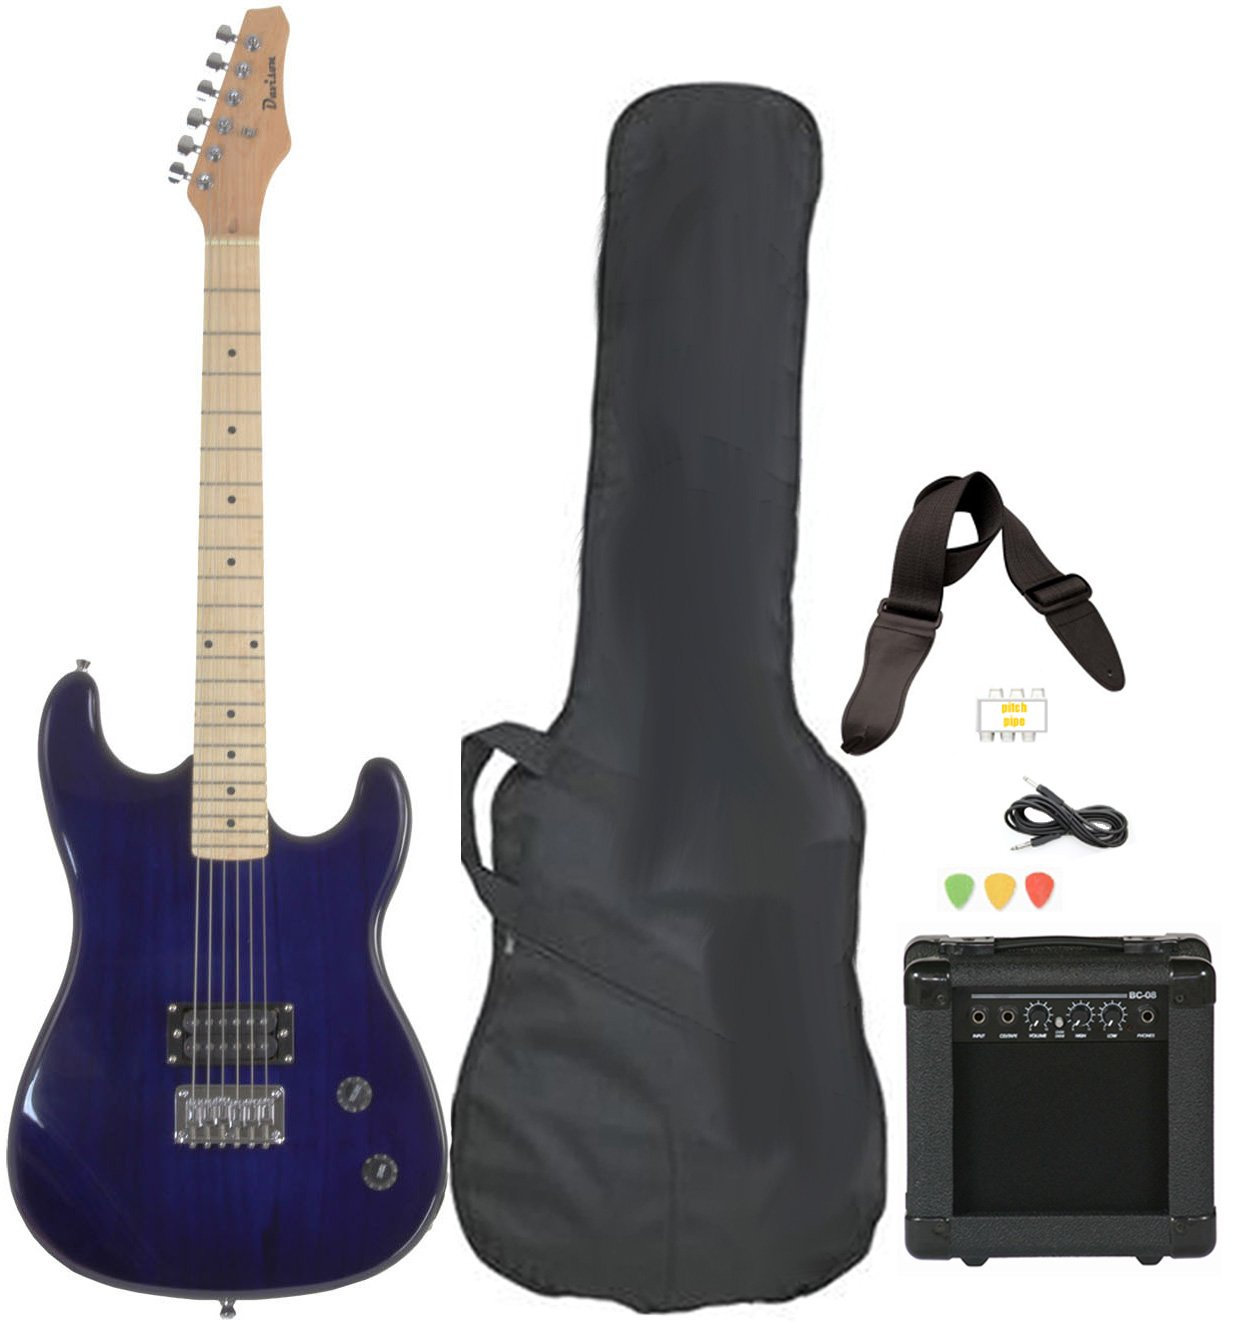 Davison Guitars Full Size Black Electric Guitar with Amp, Case and Accessories Pack Beginner Starter Package Blue Right Handed by Davison Guitars